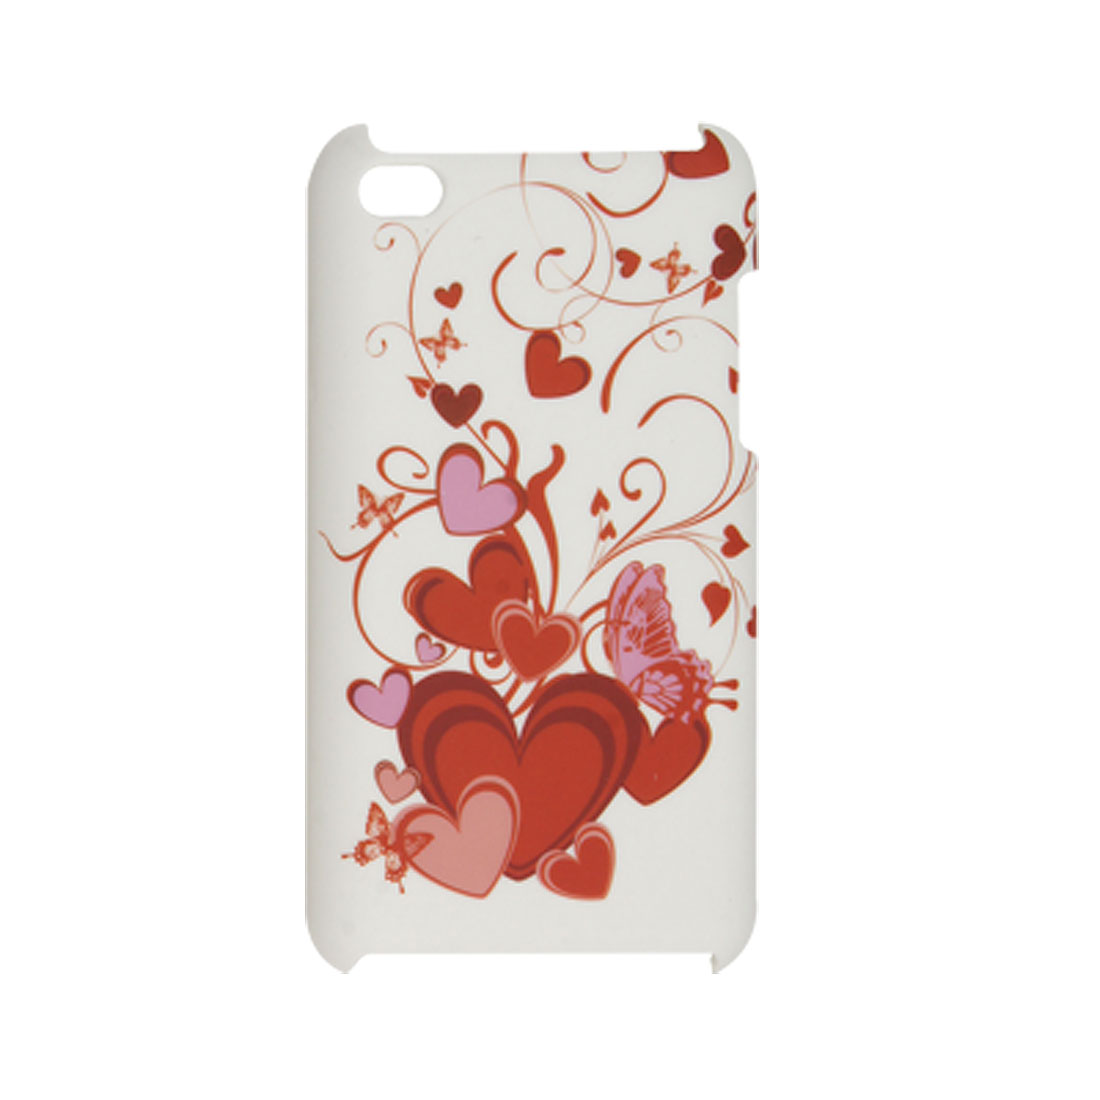 Red Heart Prints White Hard Plastic Back Case for iPod Touch 4G